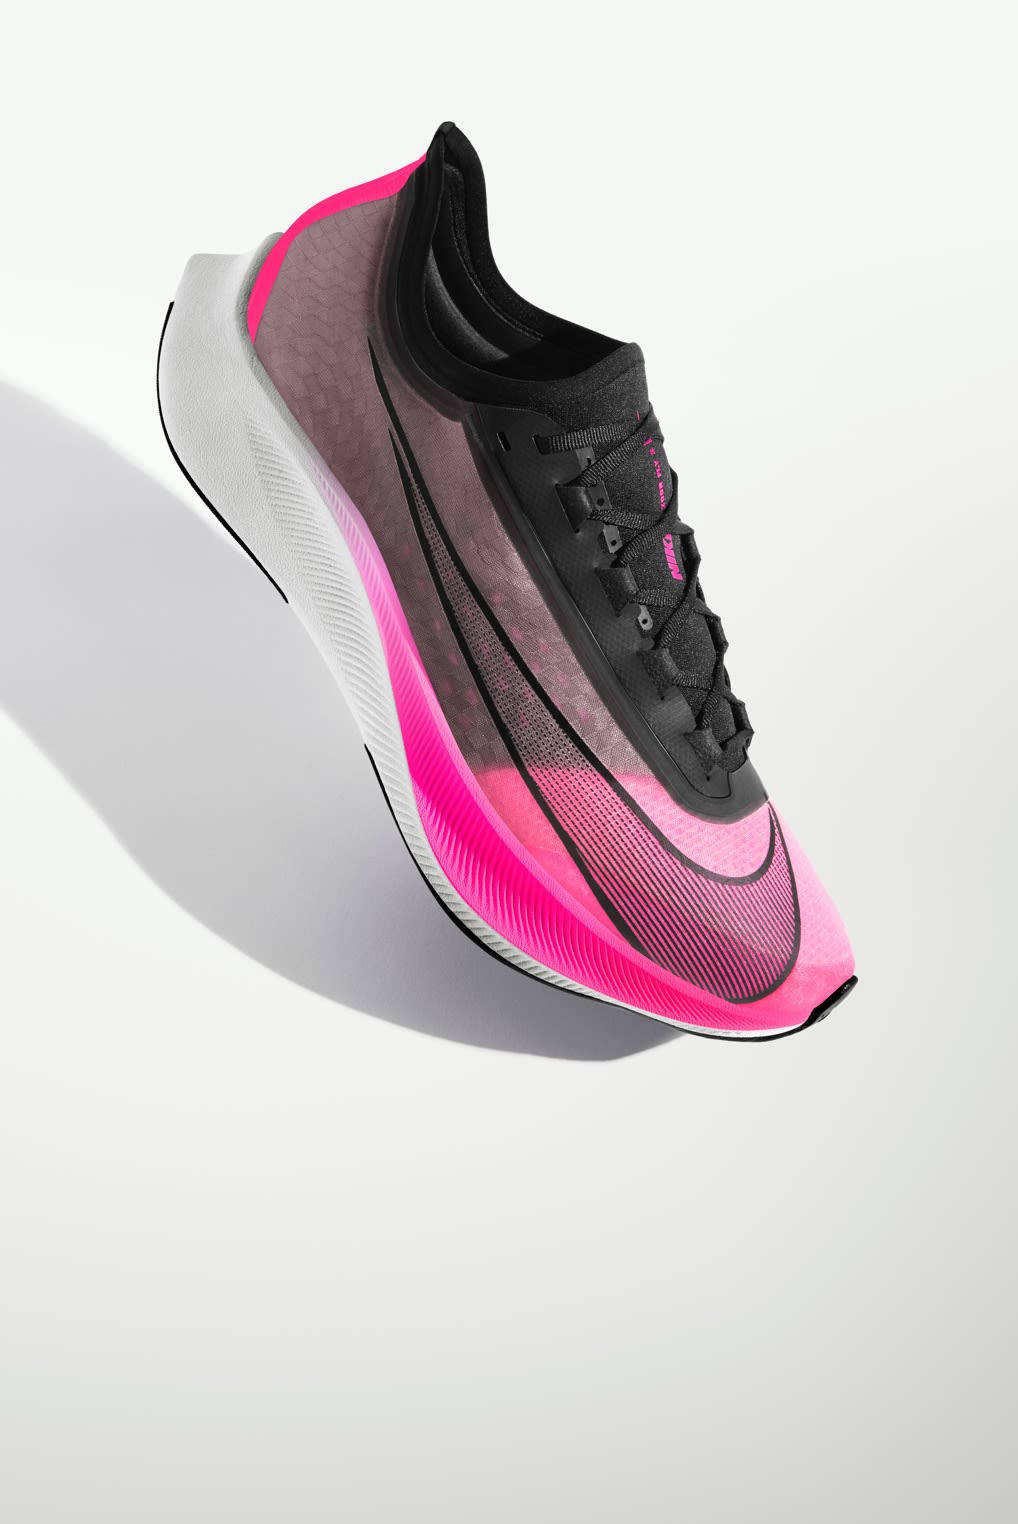 Foldable Nike Shoes Discount Offer Nike Free Run Neon Pink